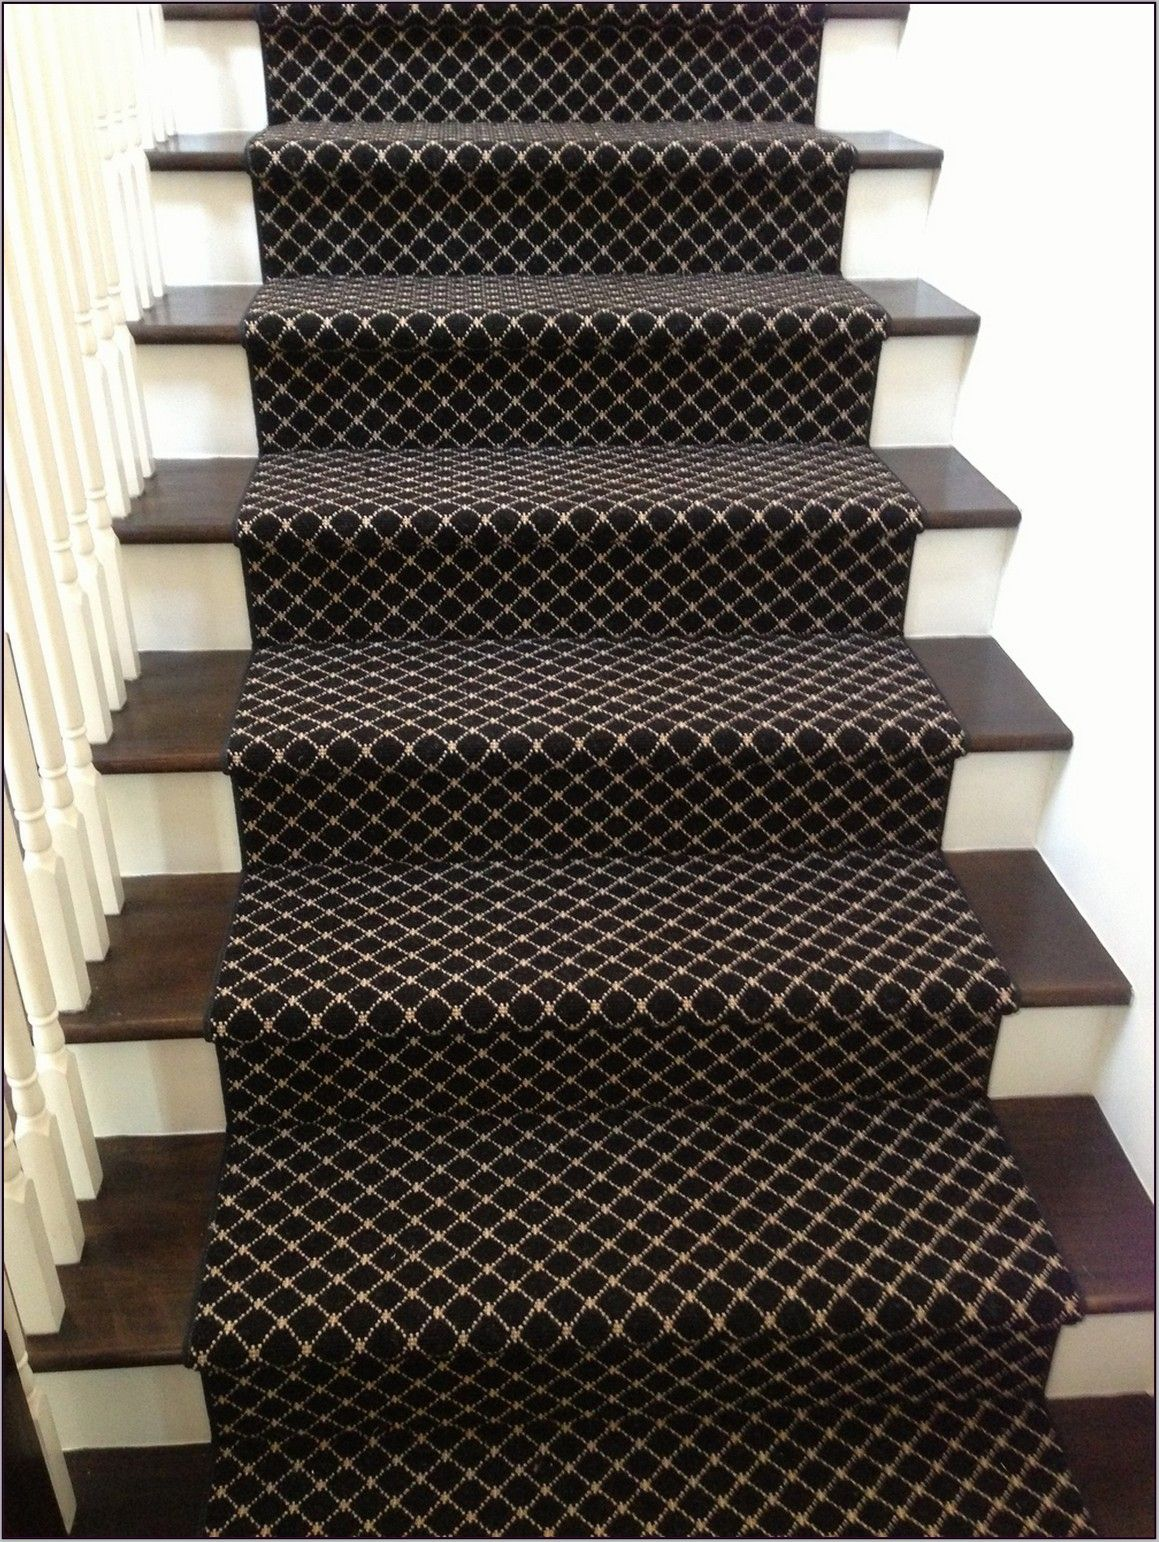 Modern Carpet Runners For Stairs For Modern Home Design Ekahomes   Modern Carpet Runners For Stairs   Step Sculptured Color   Pinterest   Curved   Light Grey   Victorian